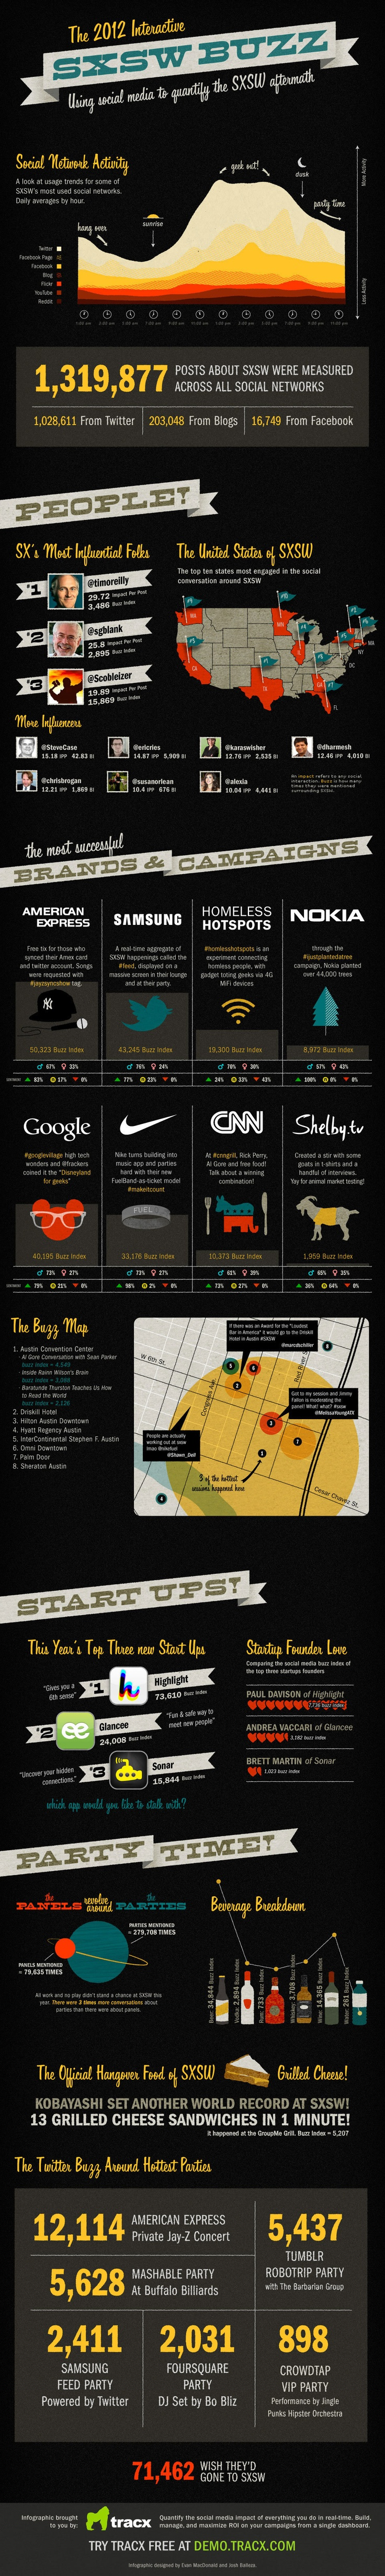 SXSWi 2012 infographic from tracx#Repin By:Pinterest++ for iPad#